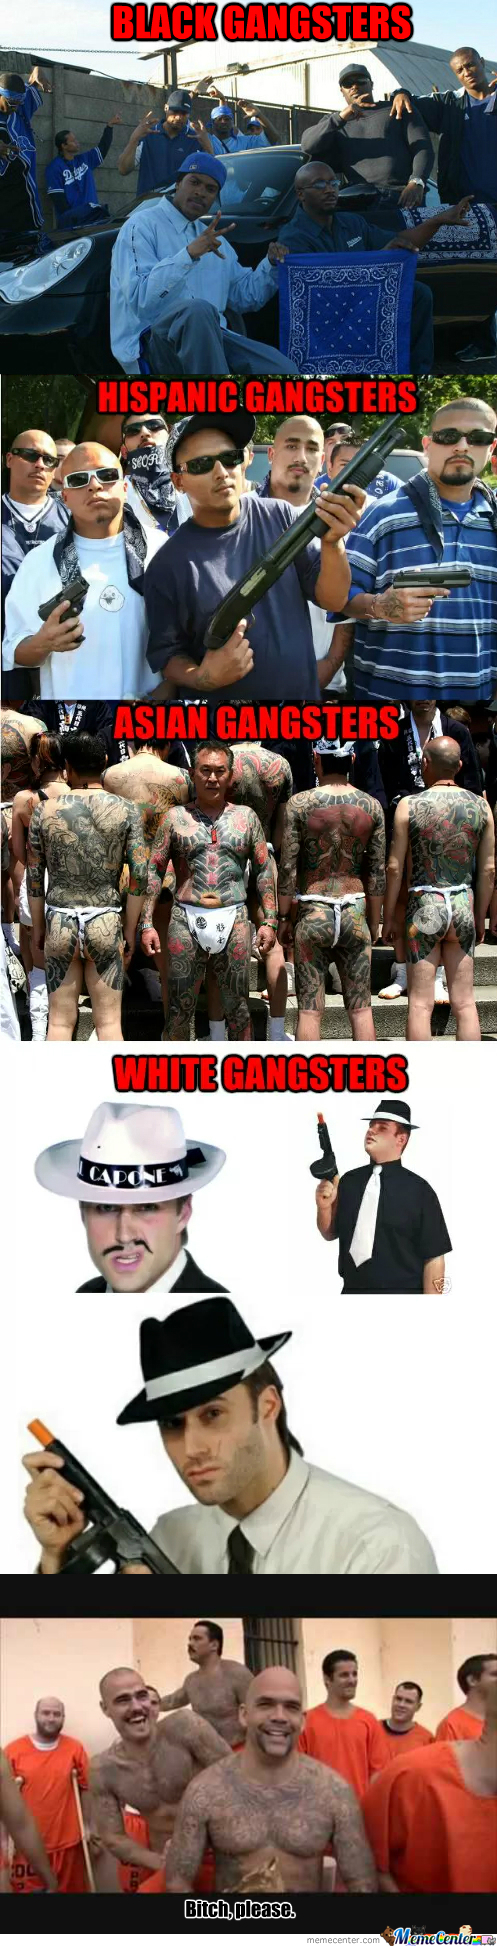 [RMX] White Gangsters